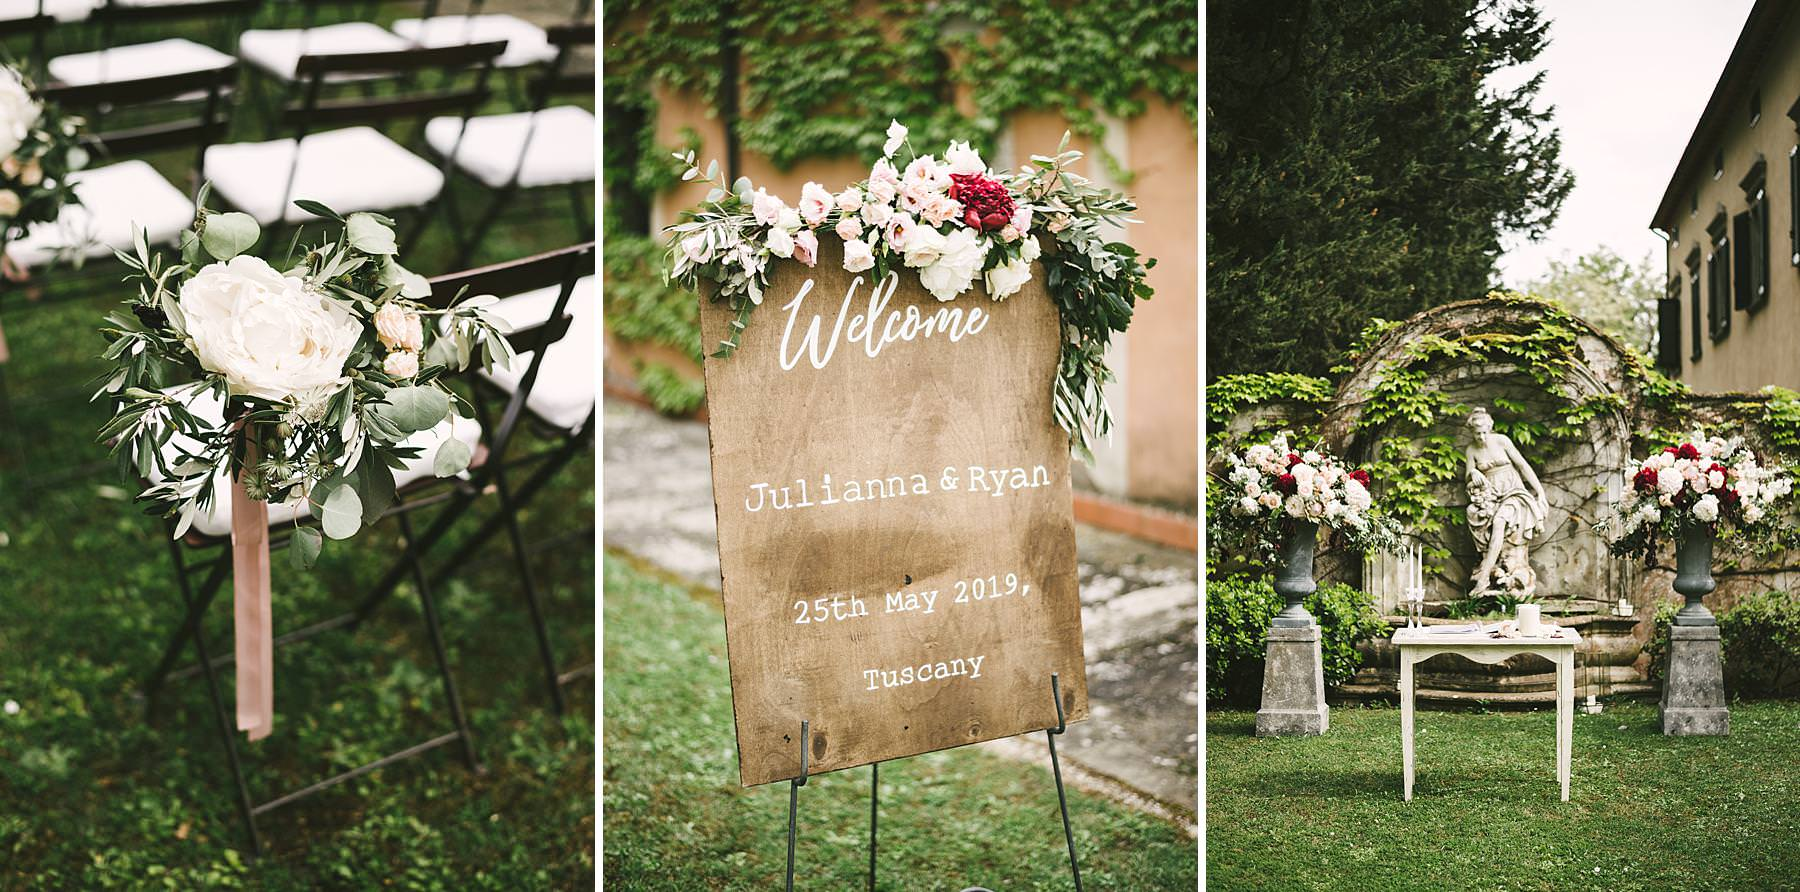 Elegant and beautiful outdoor destination ceremony decor by Flowers Living and Italian Wedding Designer planning agency